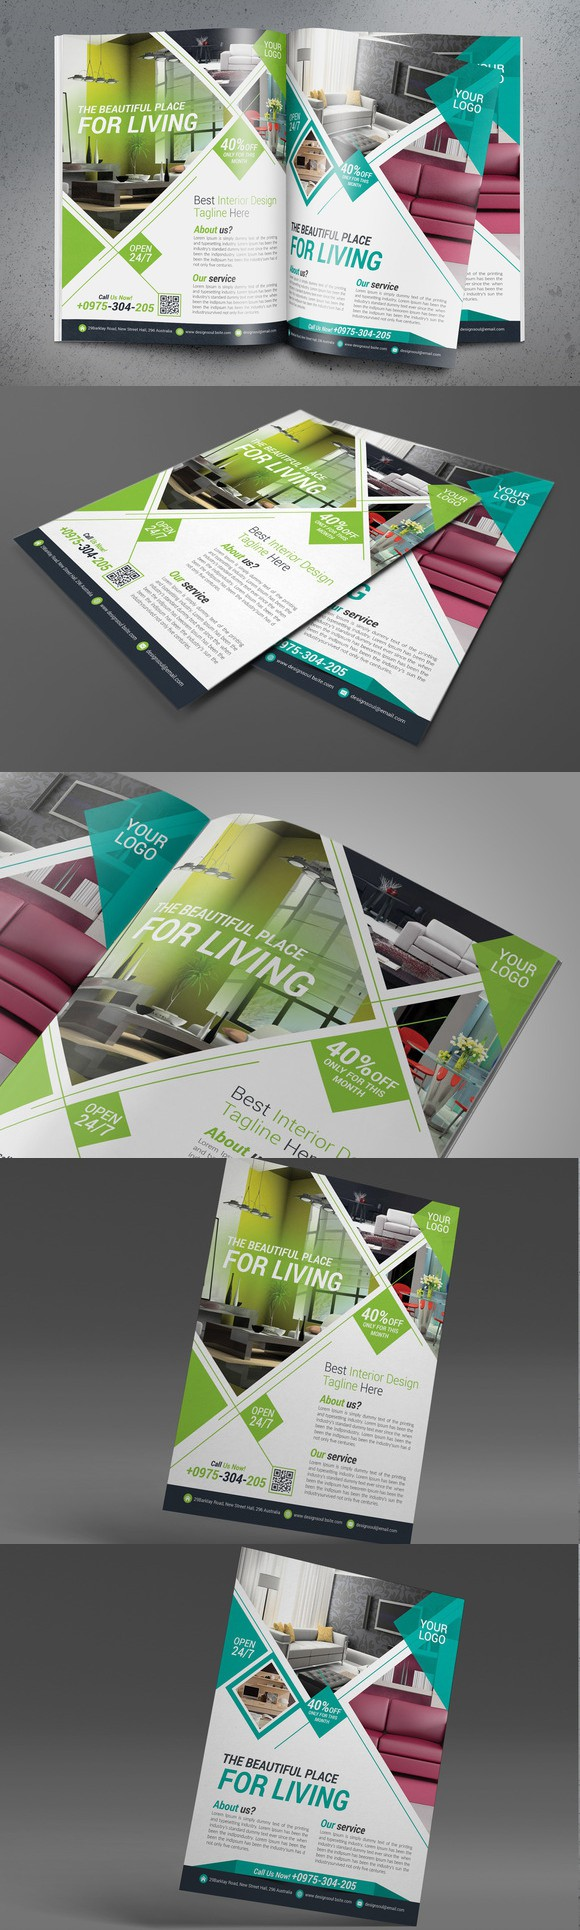 interior design flyer flyer templates flyer design flyer rh pinterest com